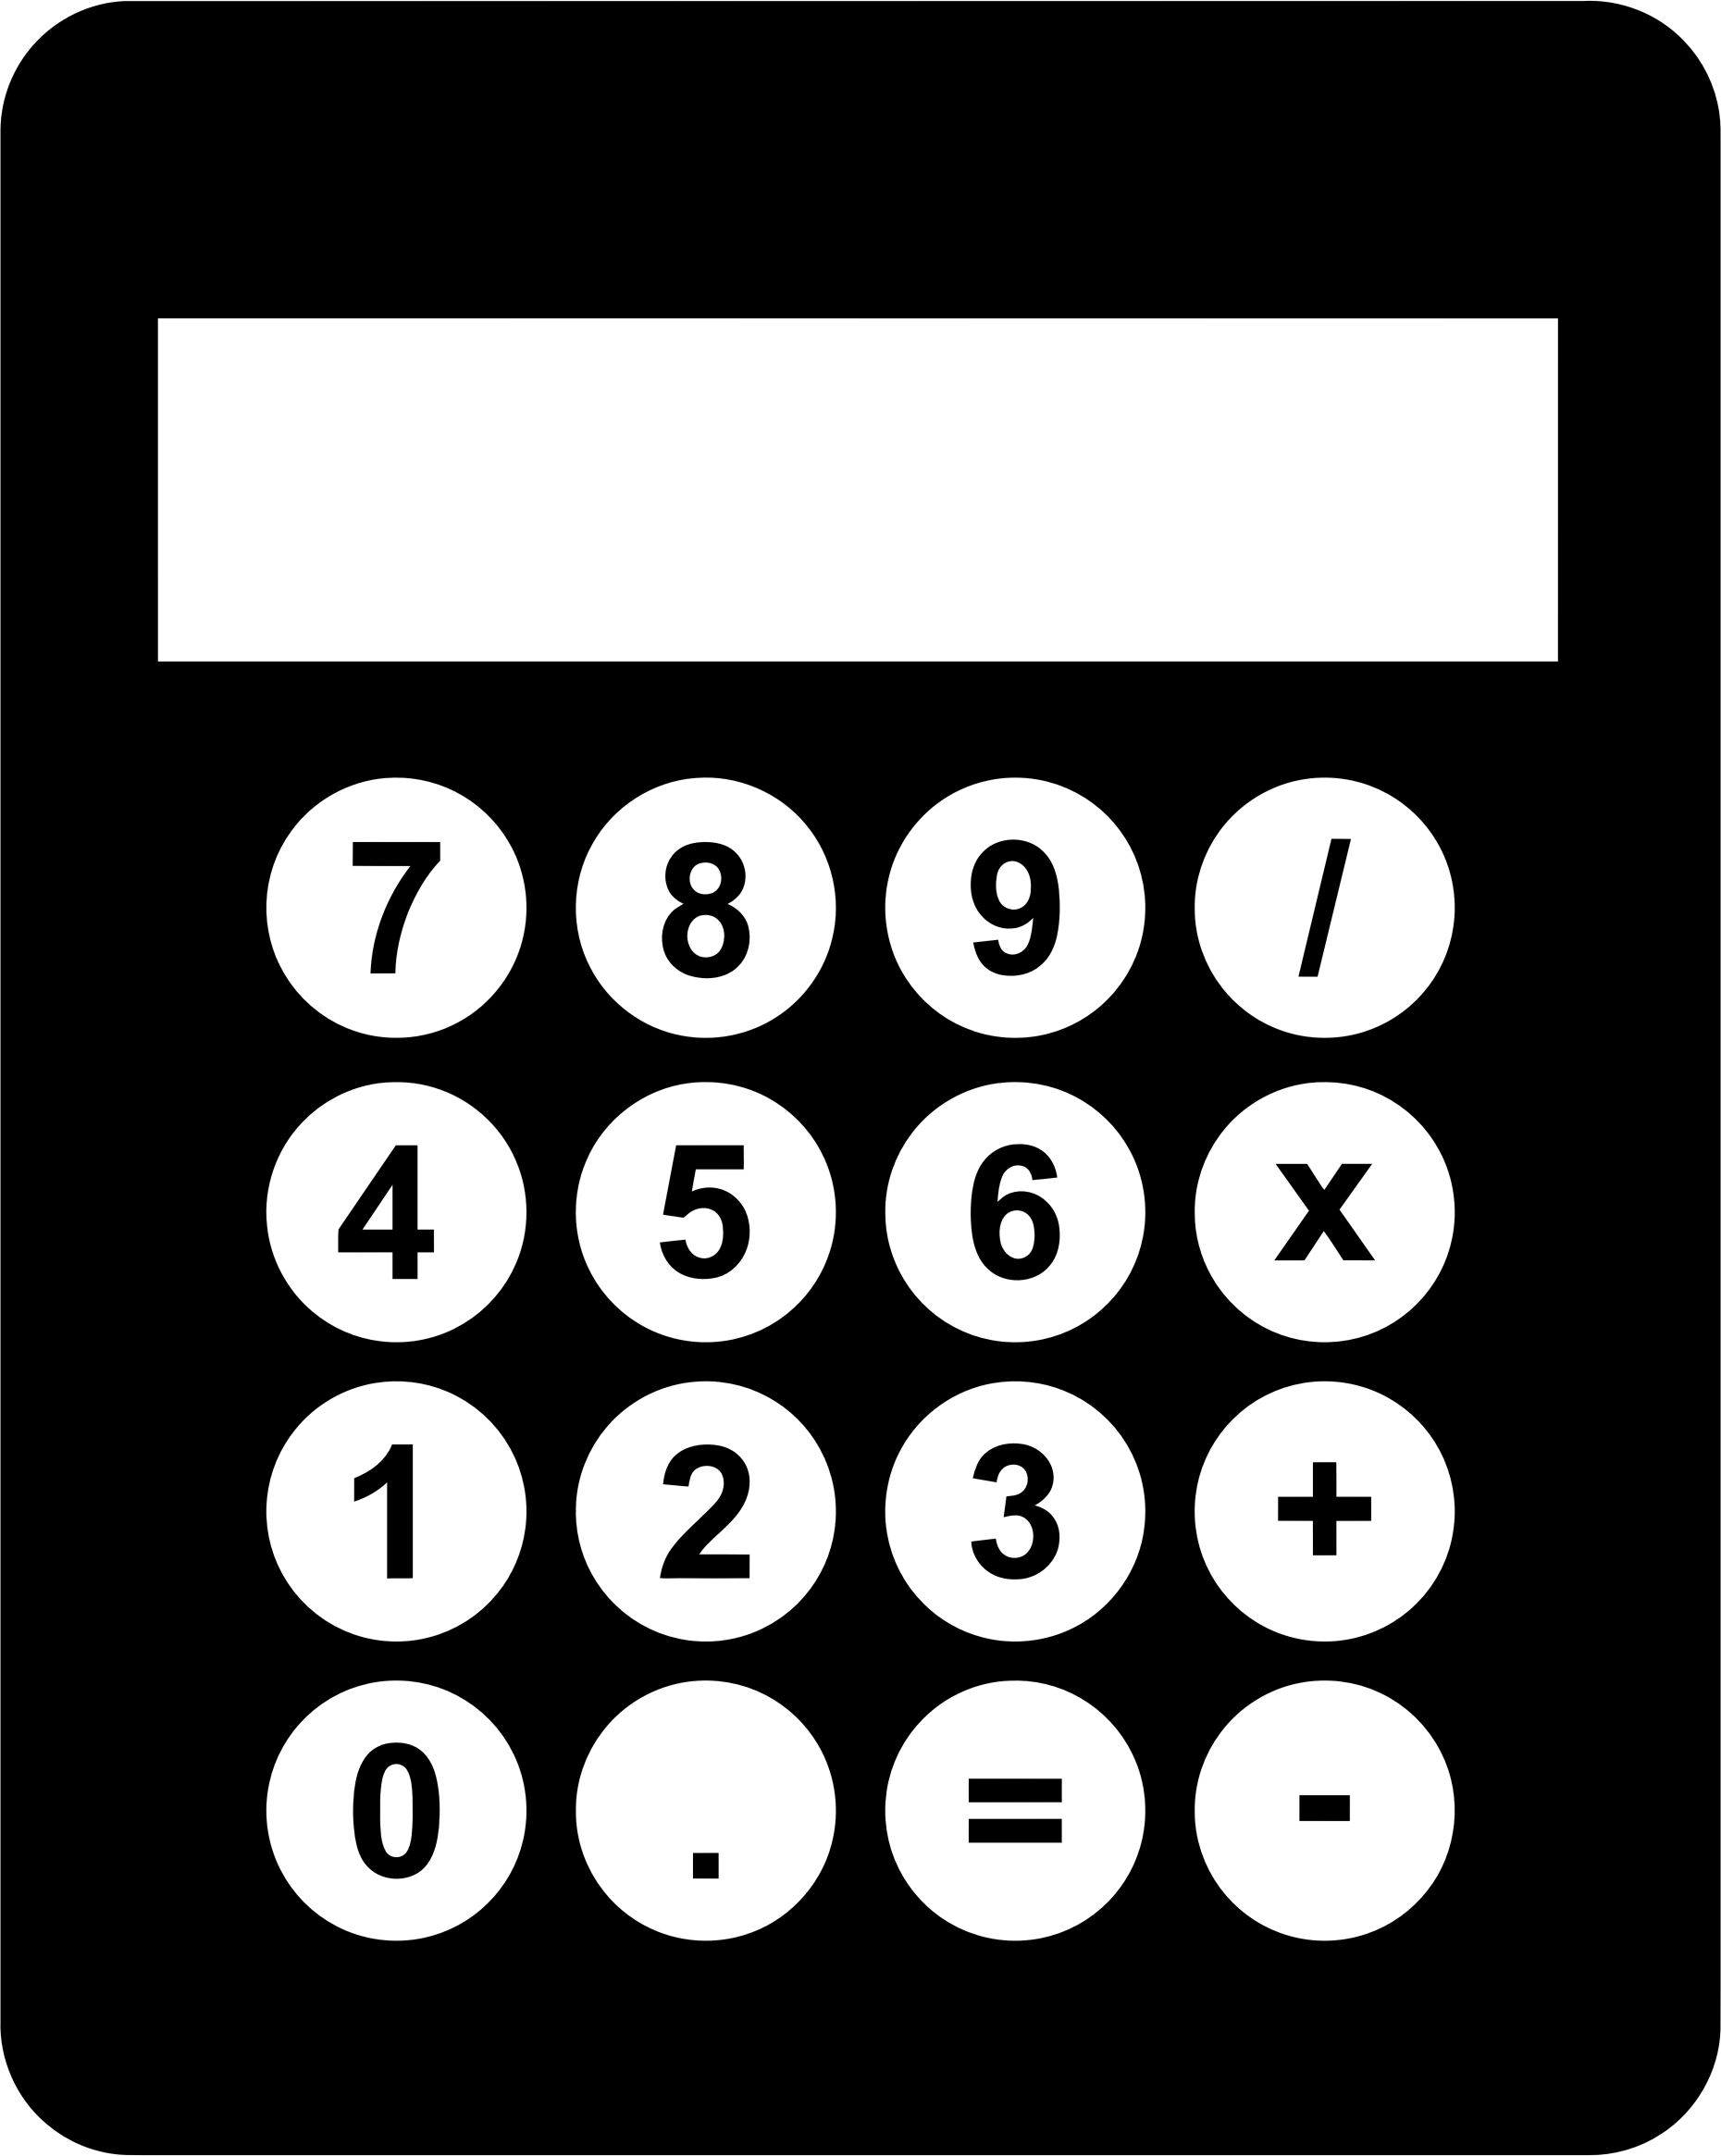 Big image png. Calculator clipart black and white